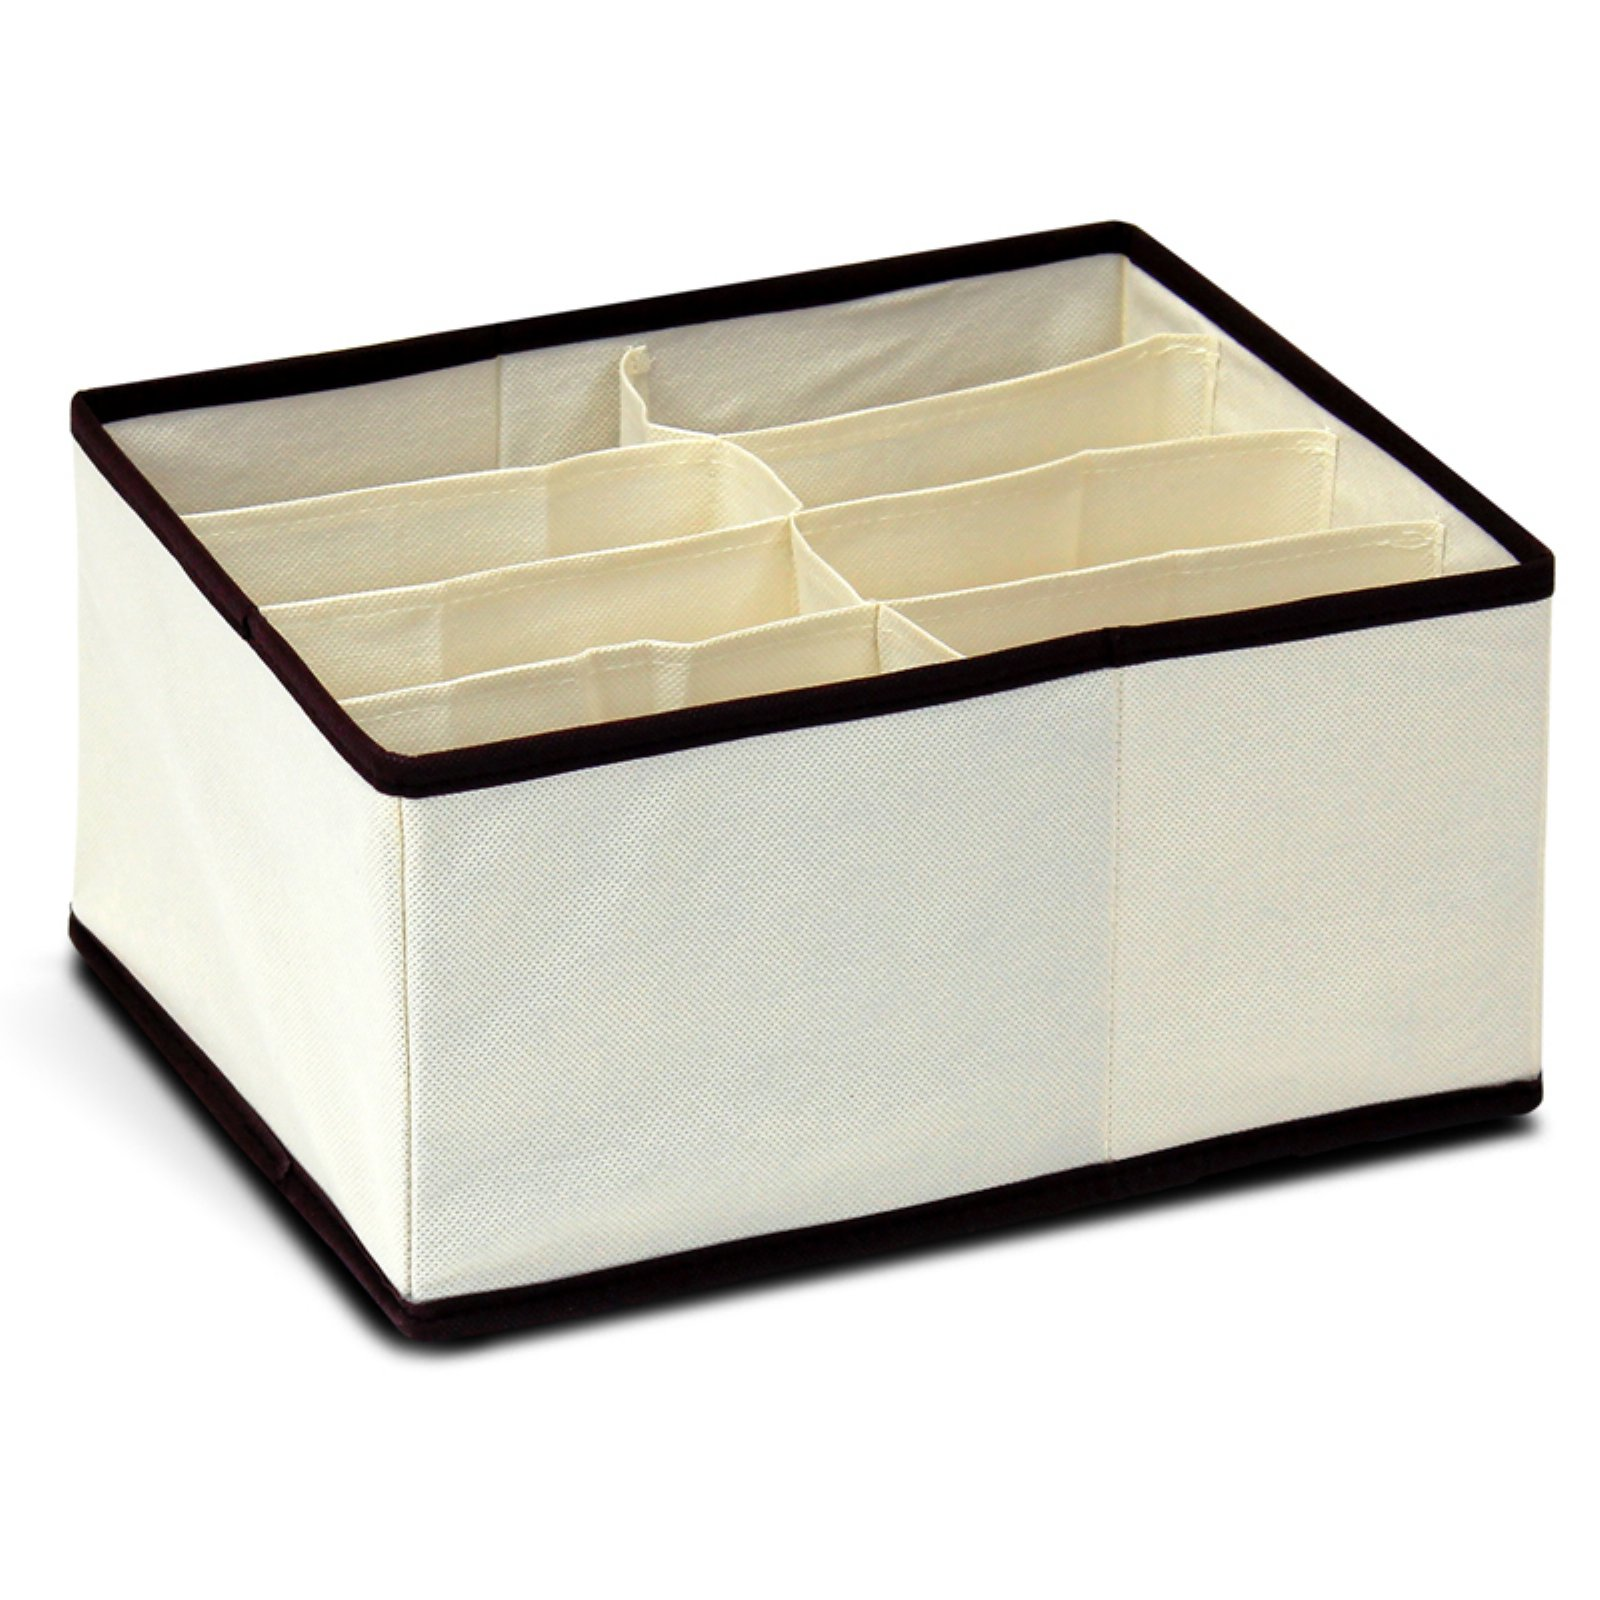 Furinno 12287IV Non-Woven Fabric 4 x 2 Deep Soft Storage Organizer, Ivory with Mid Brown Trim